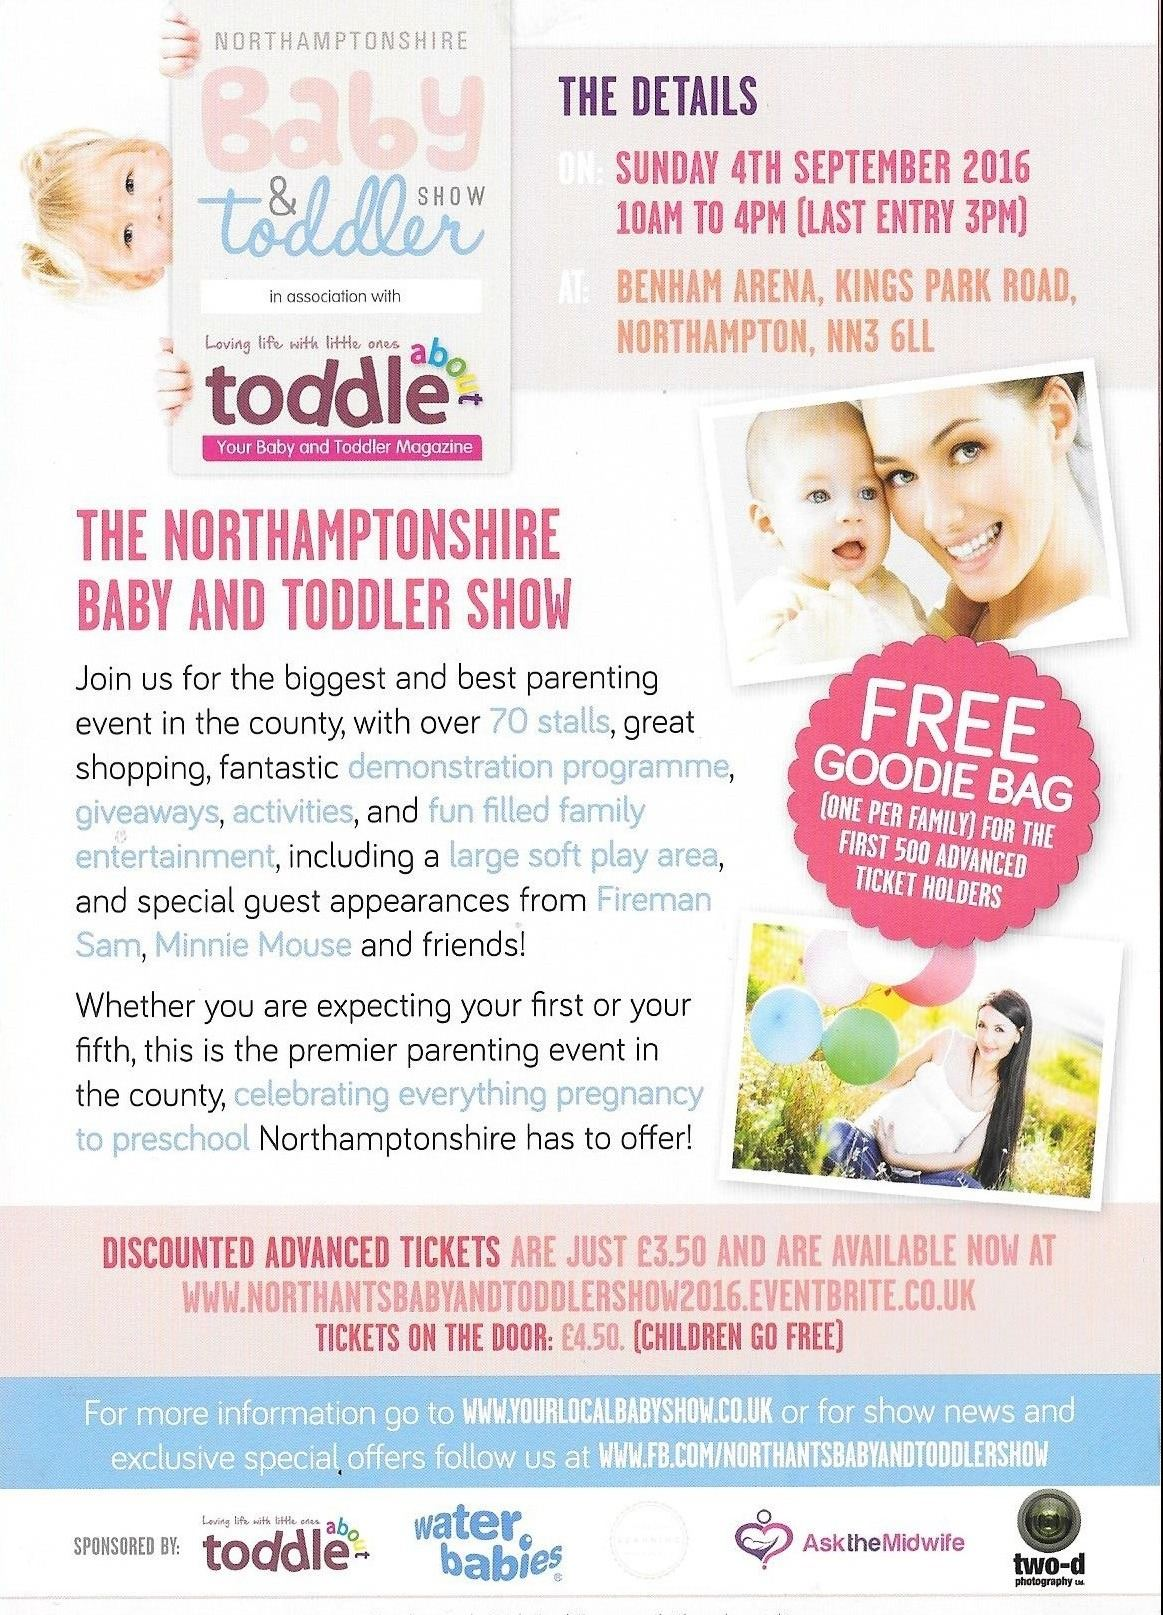 Leaflet for the Northants Baby and Toddler Show 2016